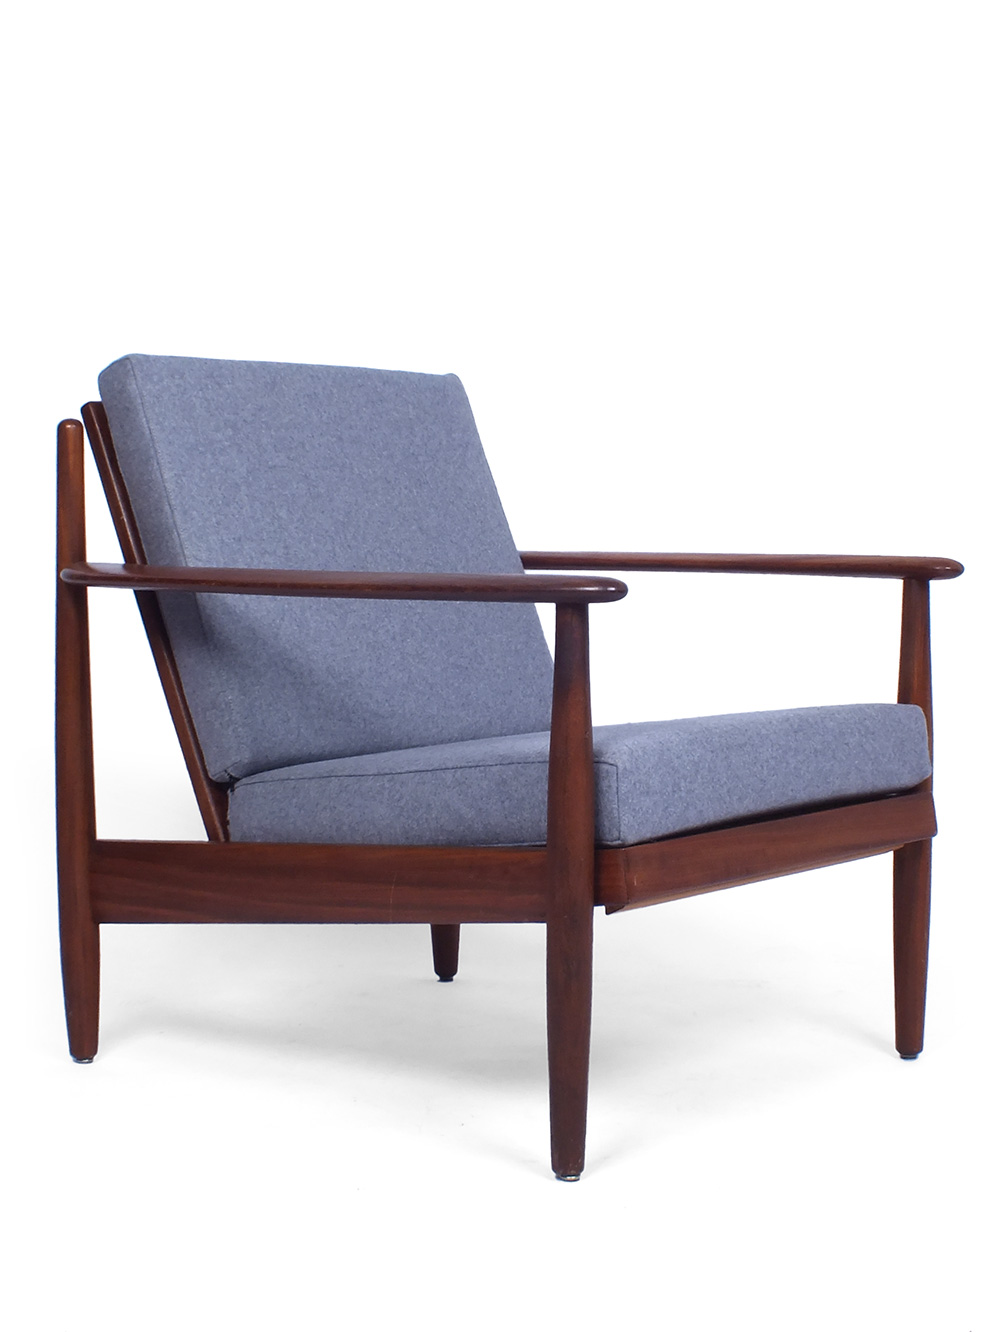 Lounge Stoel Bed.Danish Style Teak Violet Grey Colored Lounge Chair